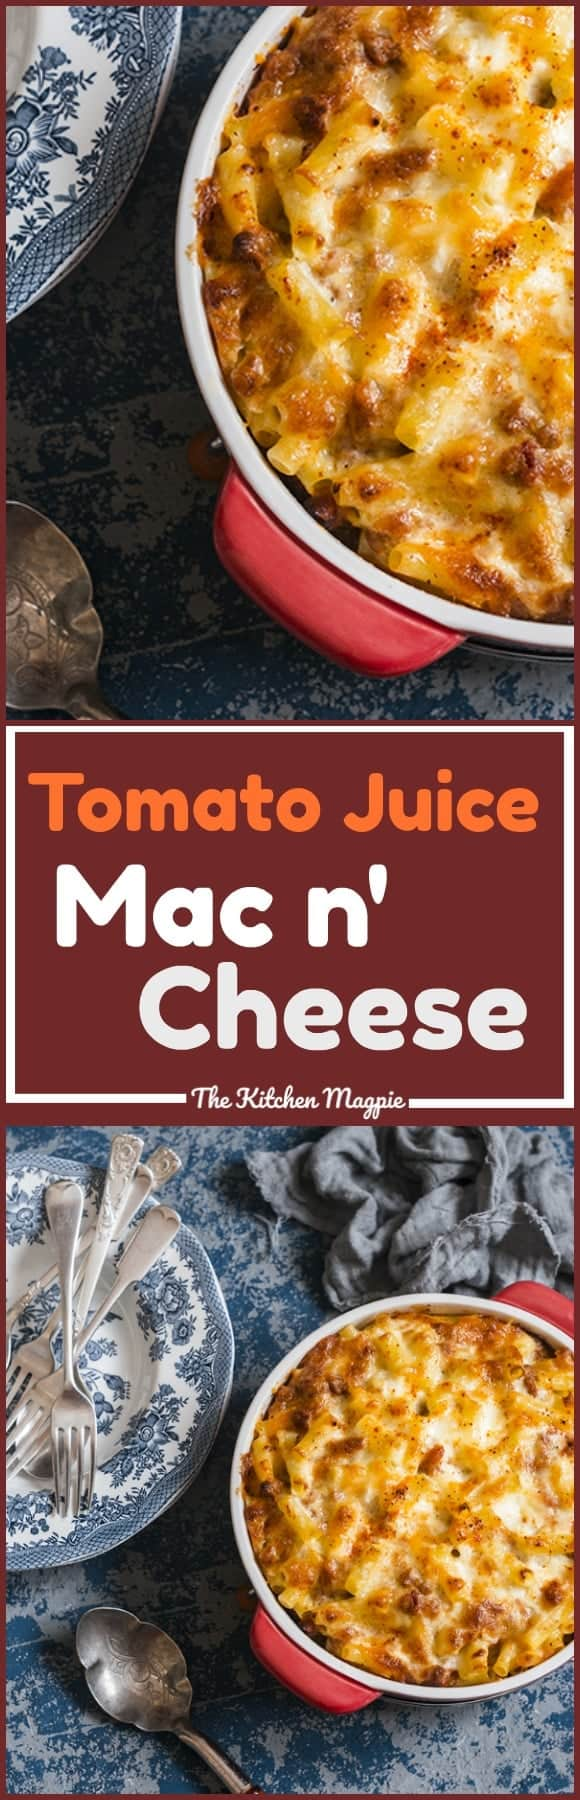 Homemade Mac and Cheese With Tomato Juice. This old fashioned favourite is THE best mac n' cheese ever! Recipe from @kitchenmagpie. #recipe #pasta #cheese